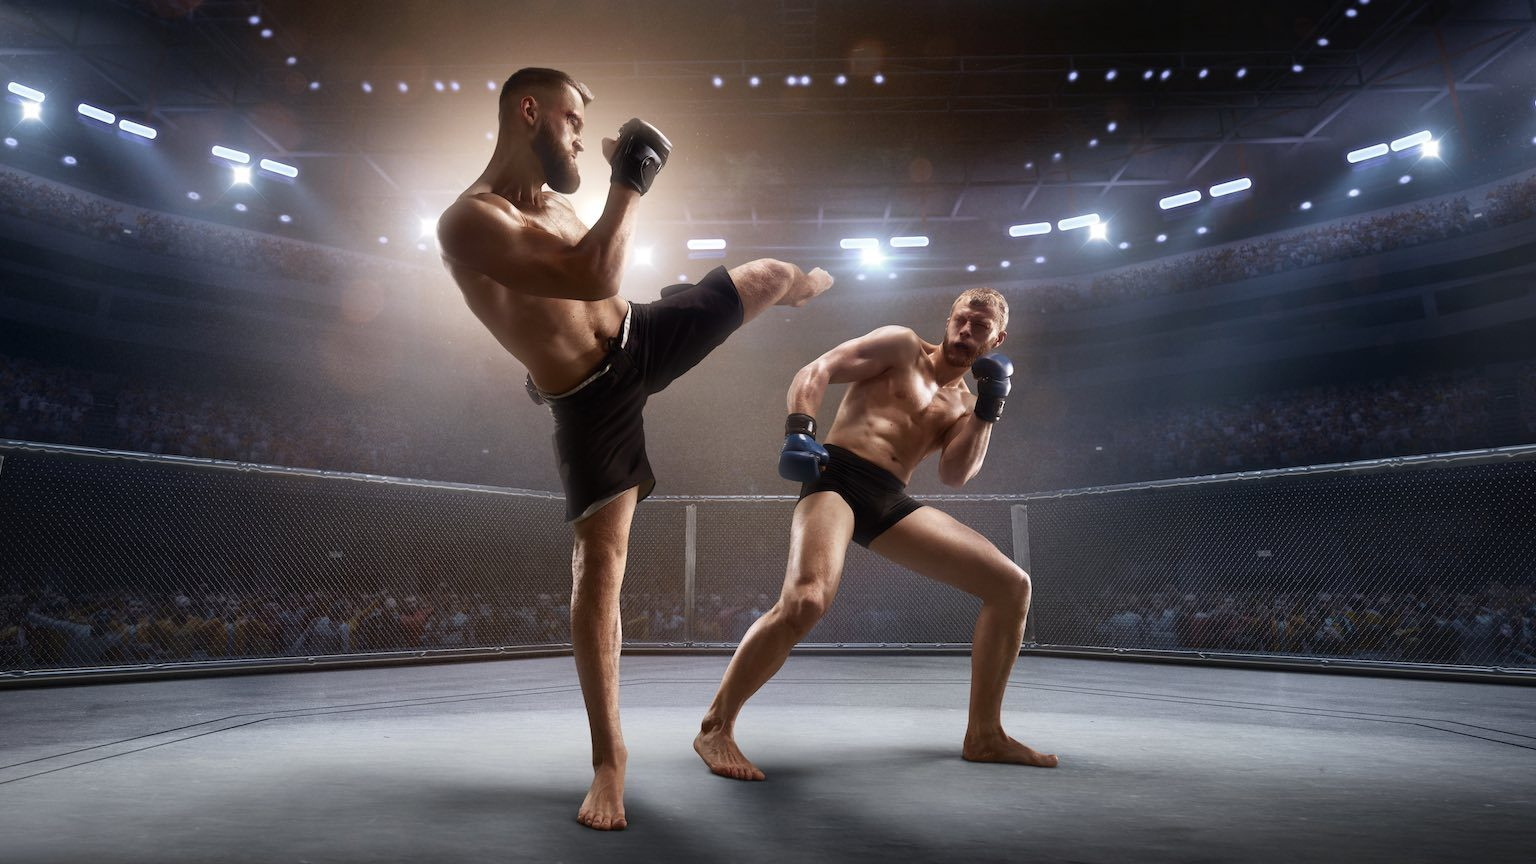 Muscular Mixed Martial Arts athletes fight in professional ring. Boxer attacks the opponent and strikes.